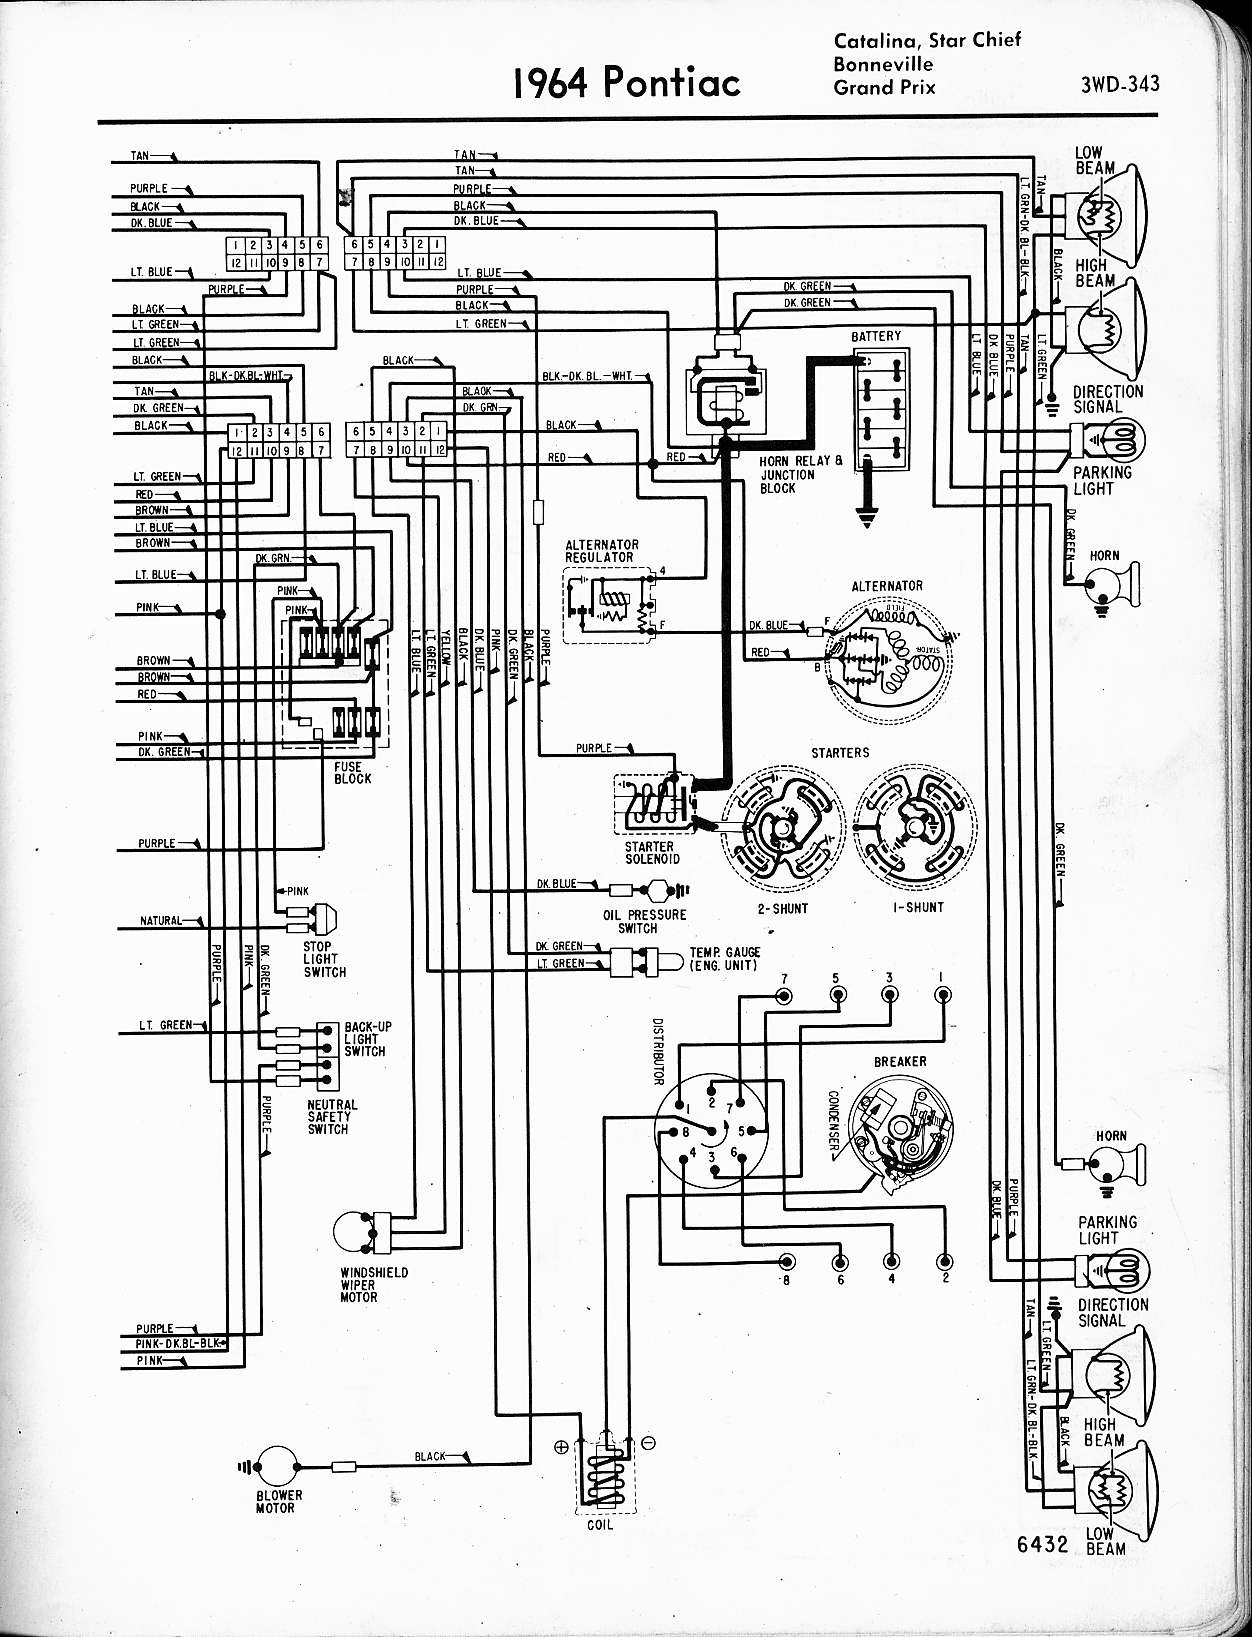 78 El Camino Fuse Box Diagram moreover Windshield Wipers Button besides Large as well 80 Trans Am Wiring Diagram besides Free Ford Mustang Wiring Diagrams. on 1978 chevy wiper motor wiring